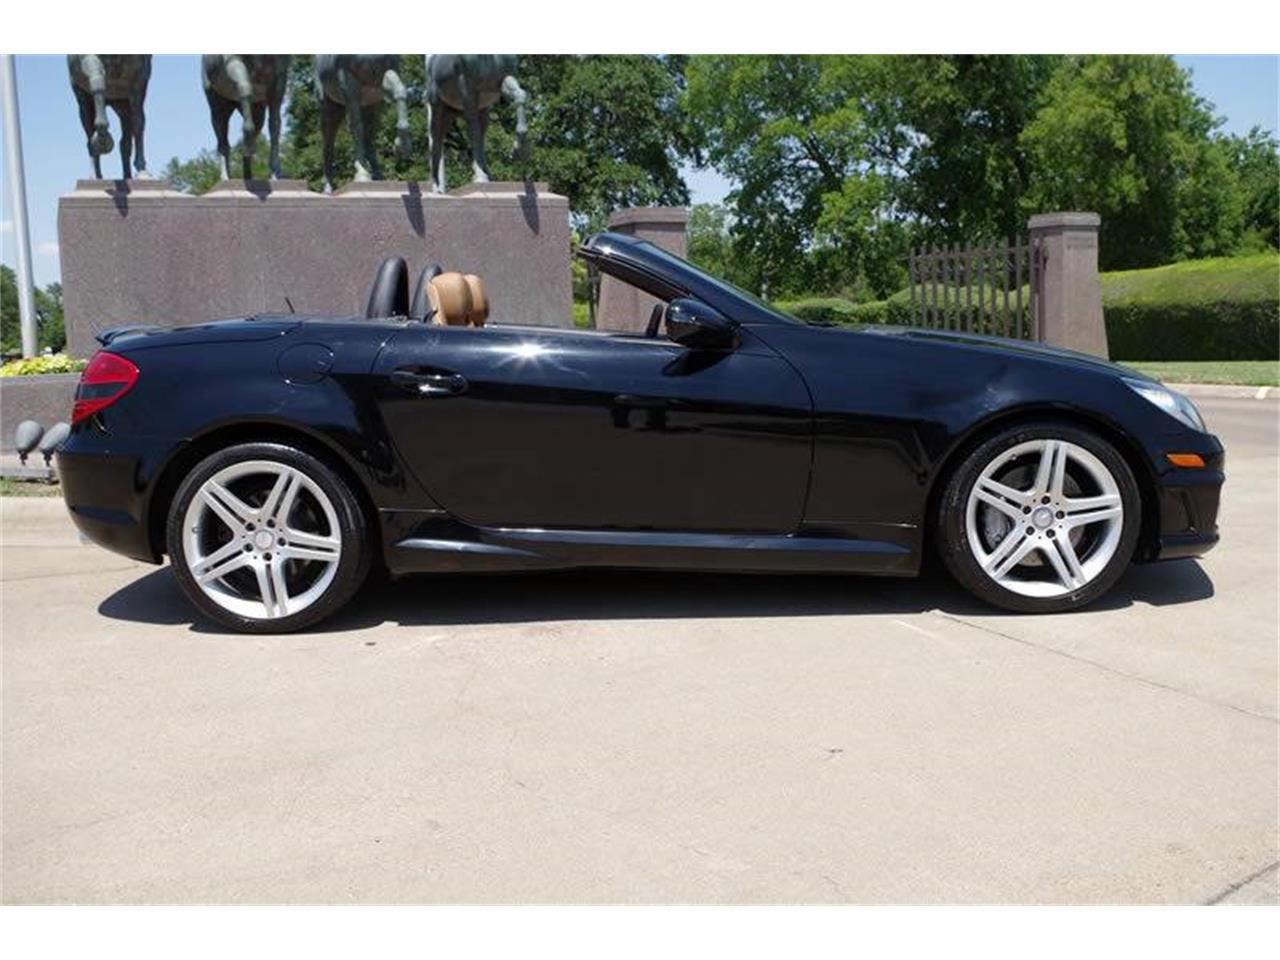 Large Picture of '11 SLK-Class located in Texas - $21,900.00 - L3QE